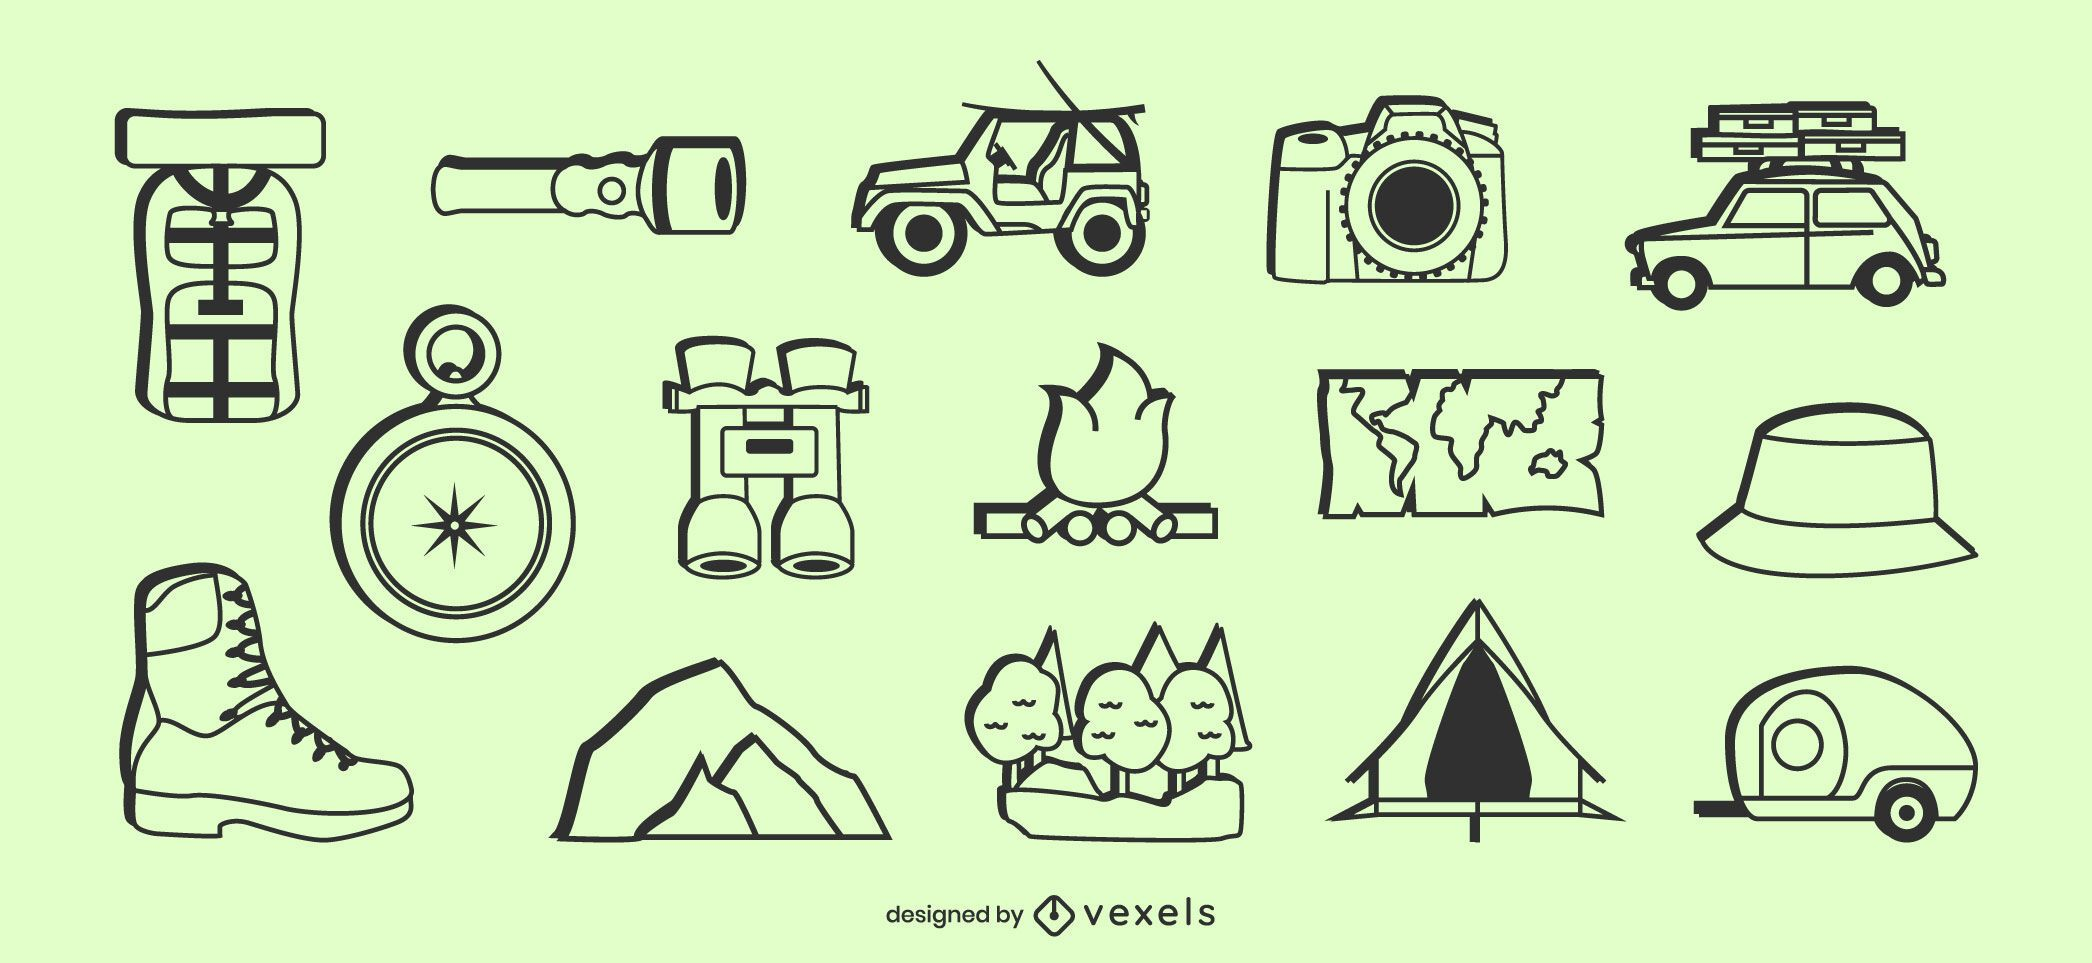 Camping icon elements set